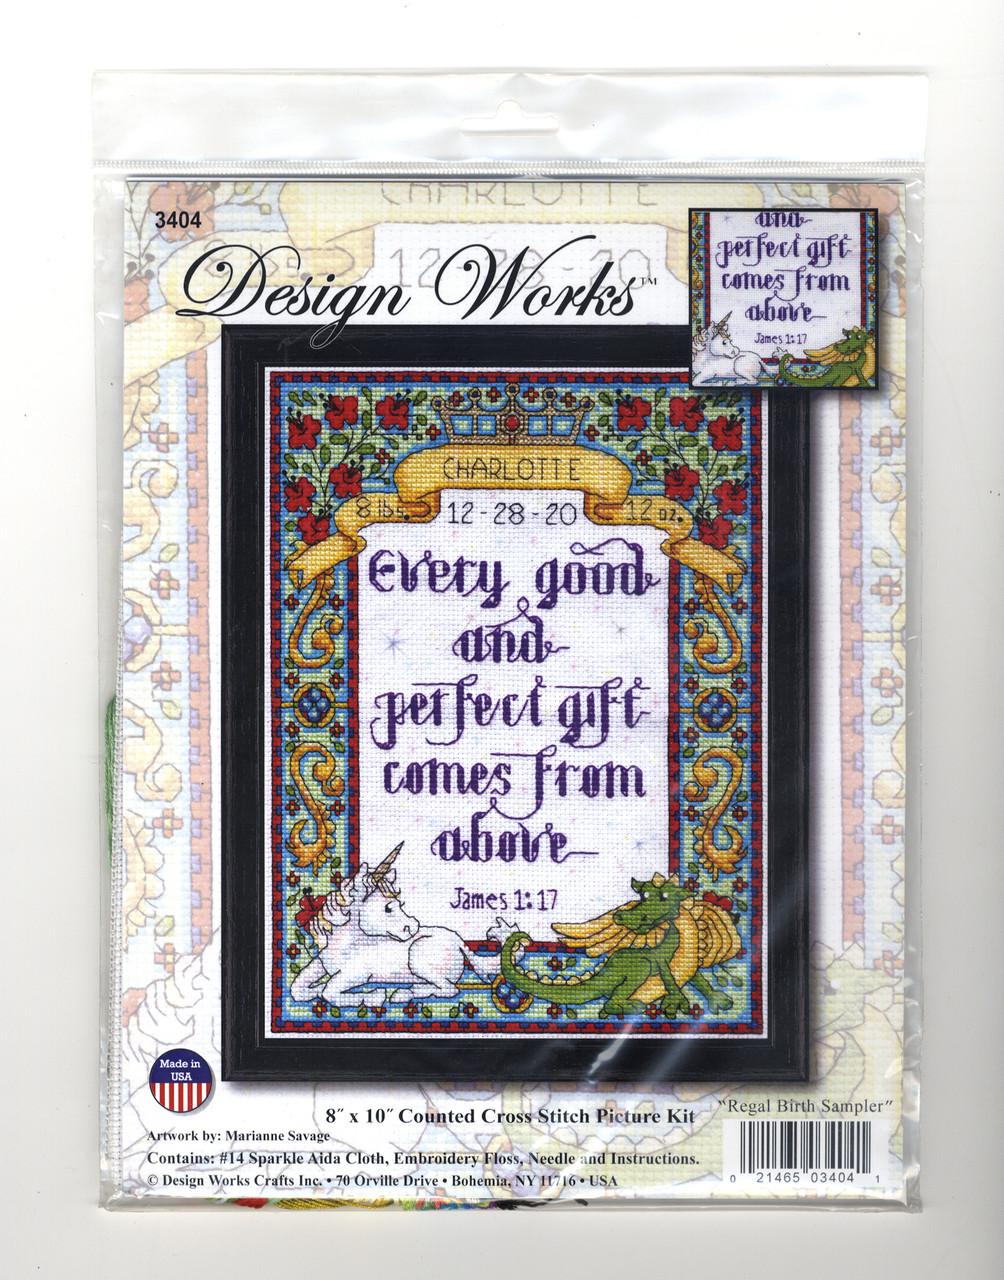 Design Works - Regal Birth Sampler